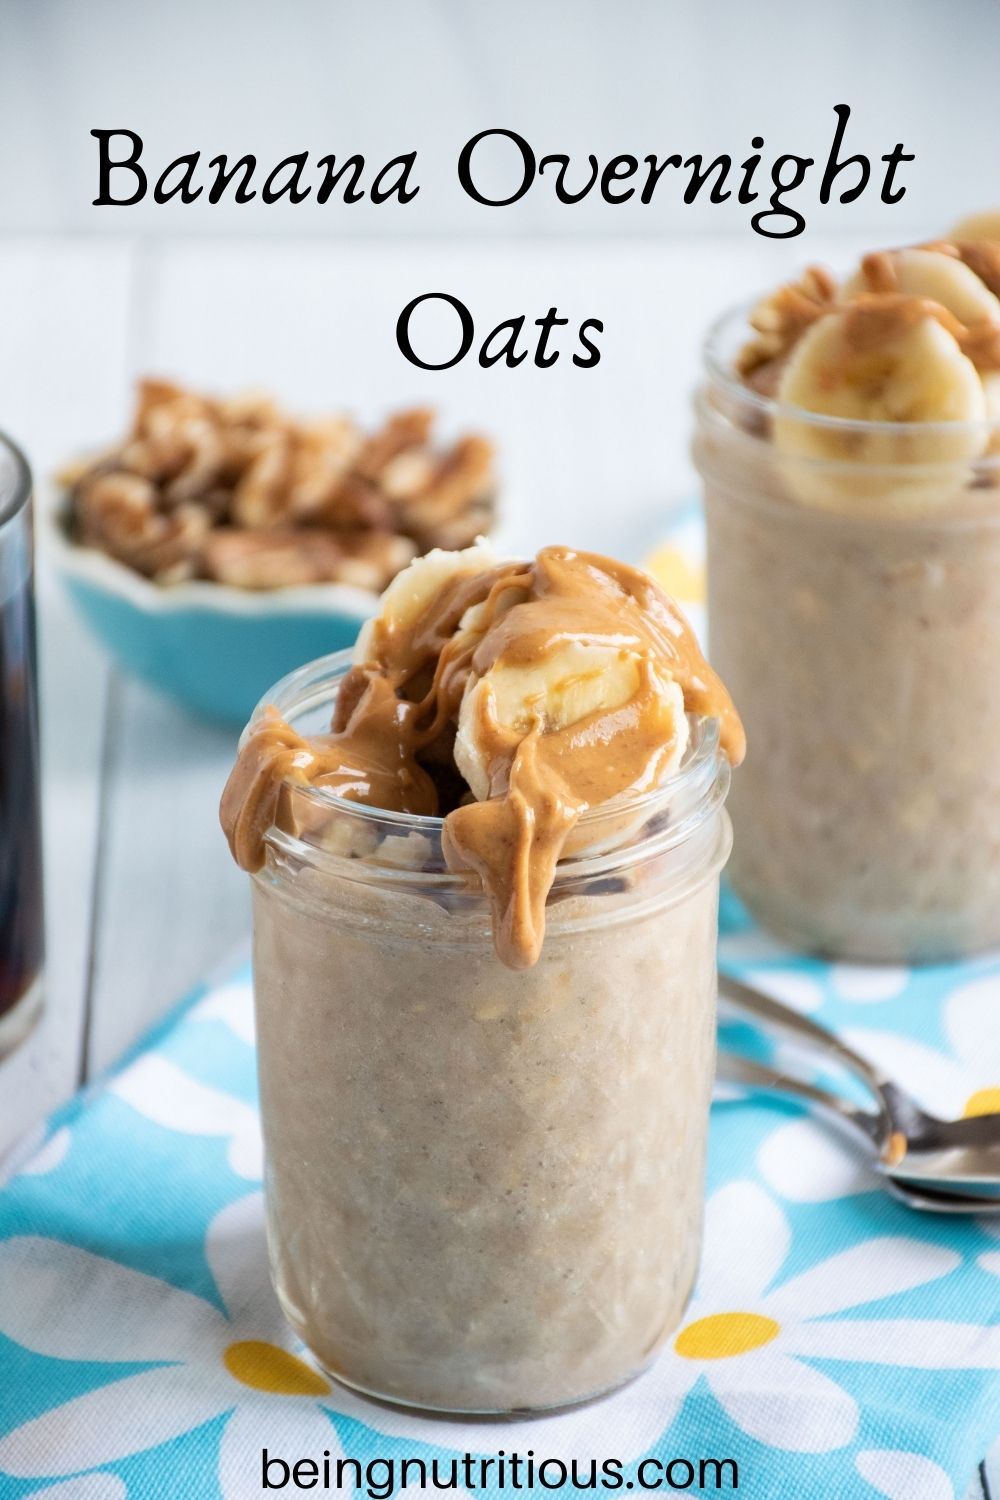 Small mason jar of oatmeal with walnuts and banana slices on top, with a drizzle of peanut butter. Text overlay: Banana Overnight Oats.